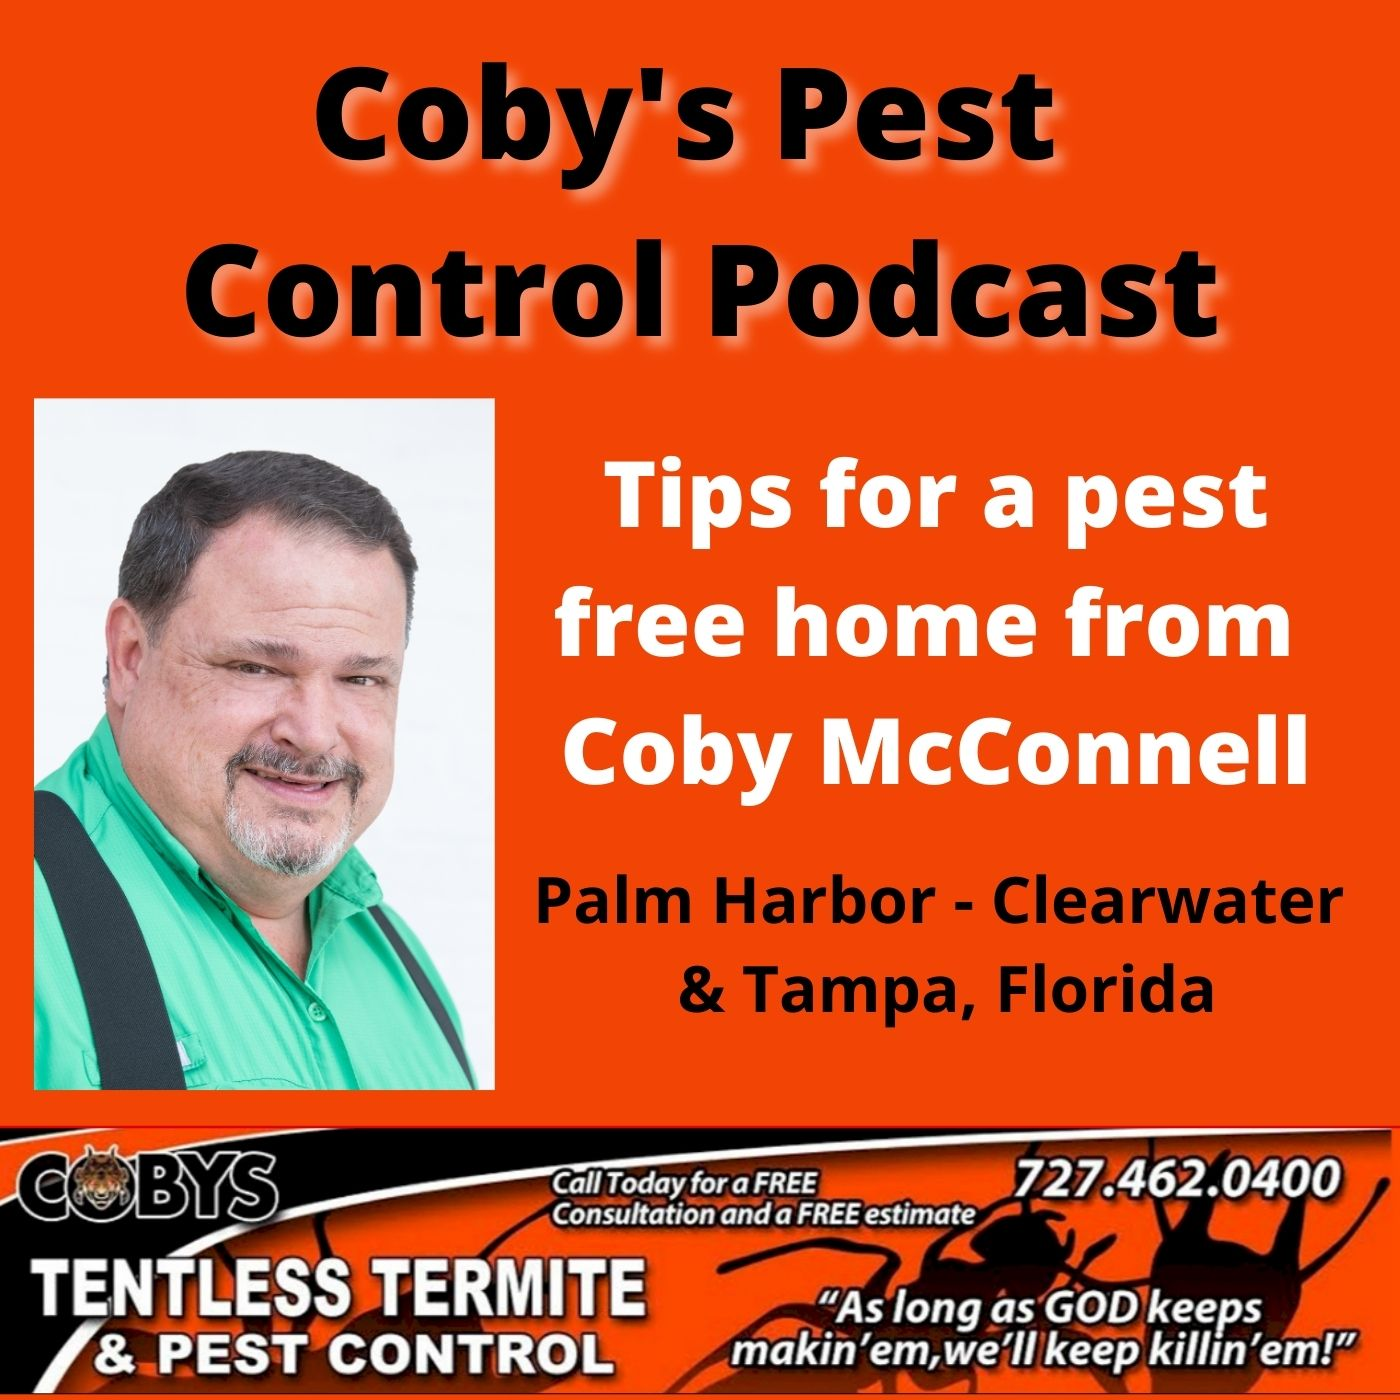 Coby's Pest Control & Tentless Termite Podcast